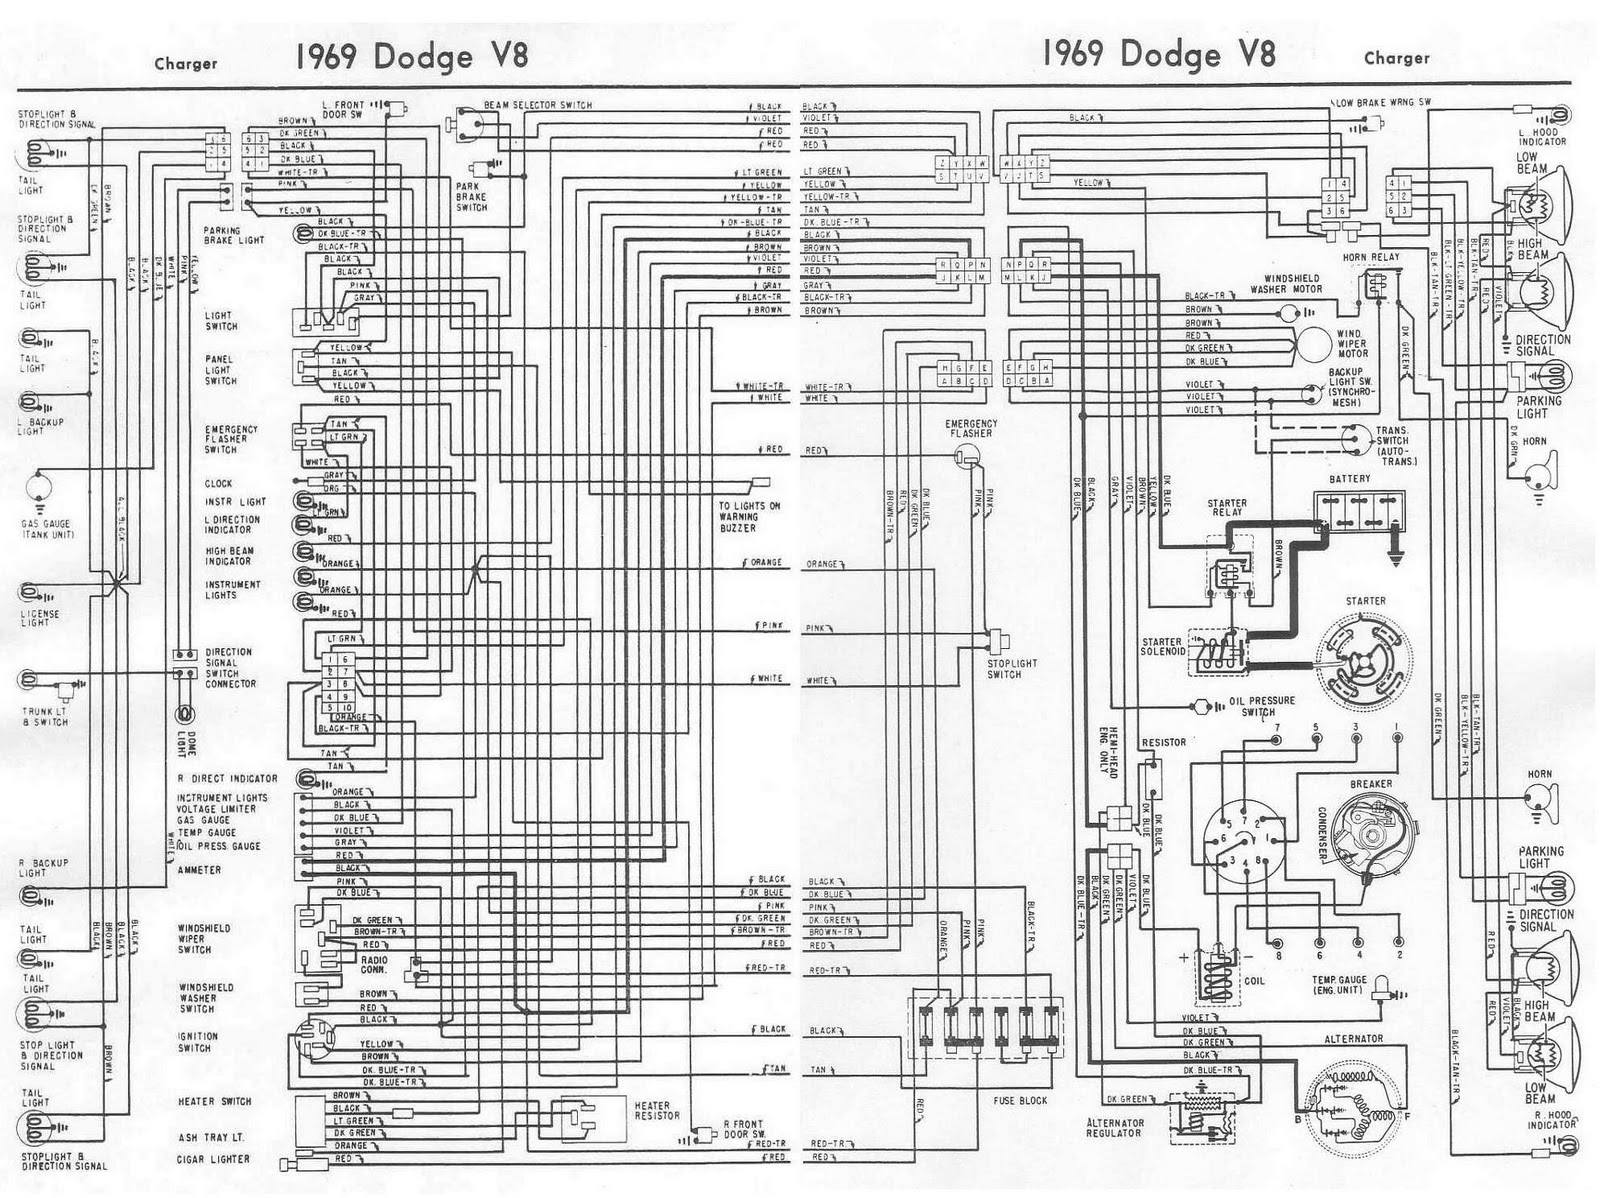 1970 Cuda Wiring Diagram Horn Vw Turn Signal Wiring Diagram Plymouth Cukk Jeanjaures37 Fr